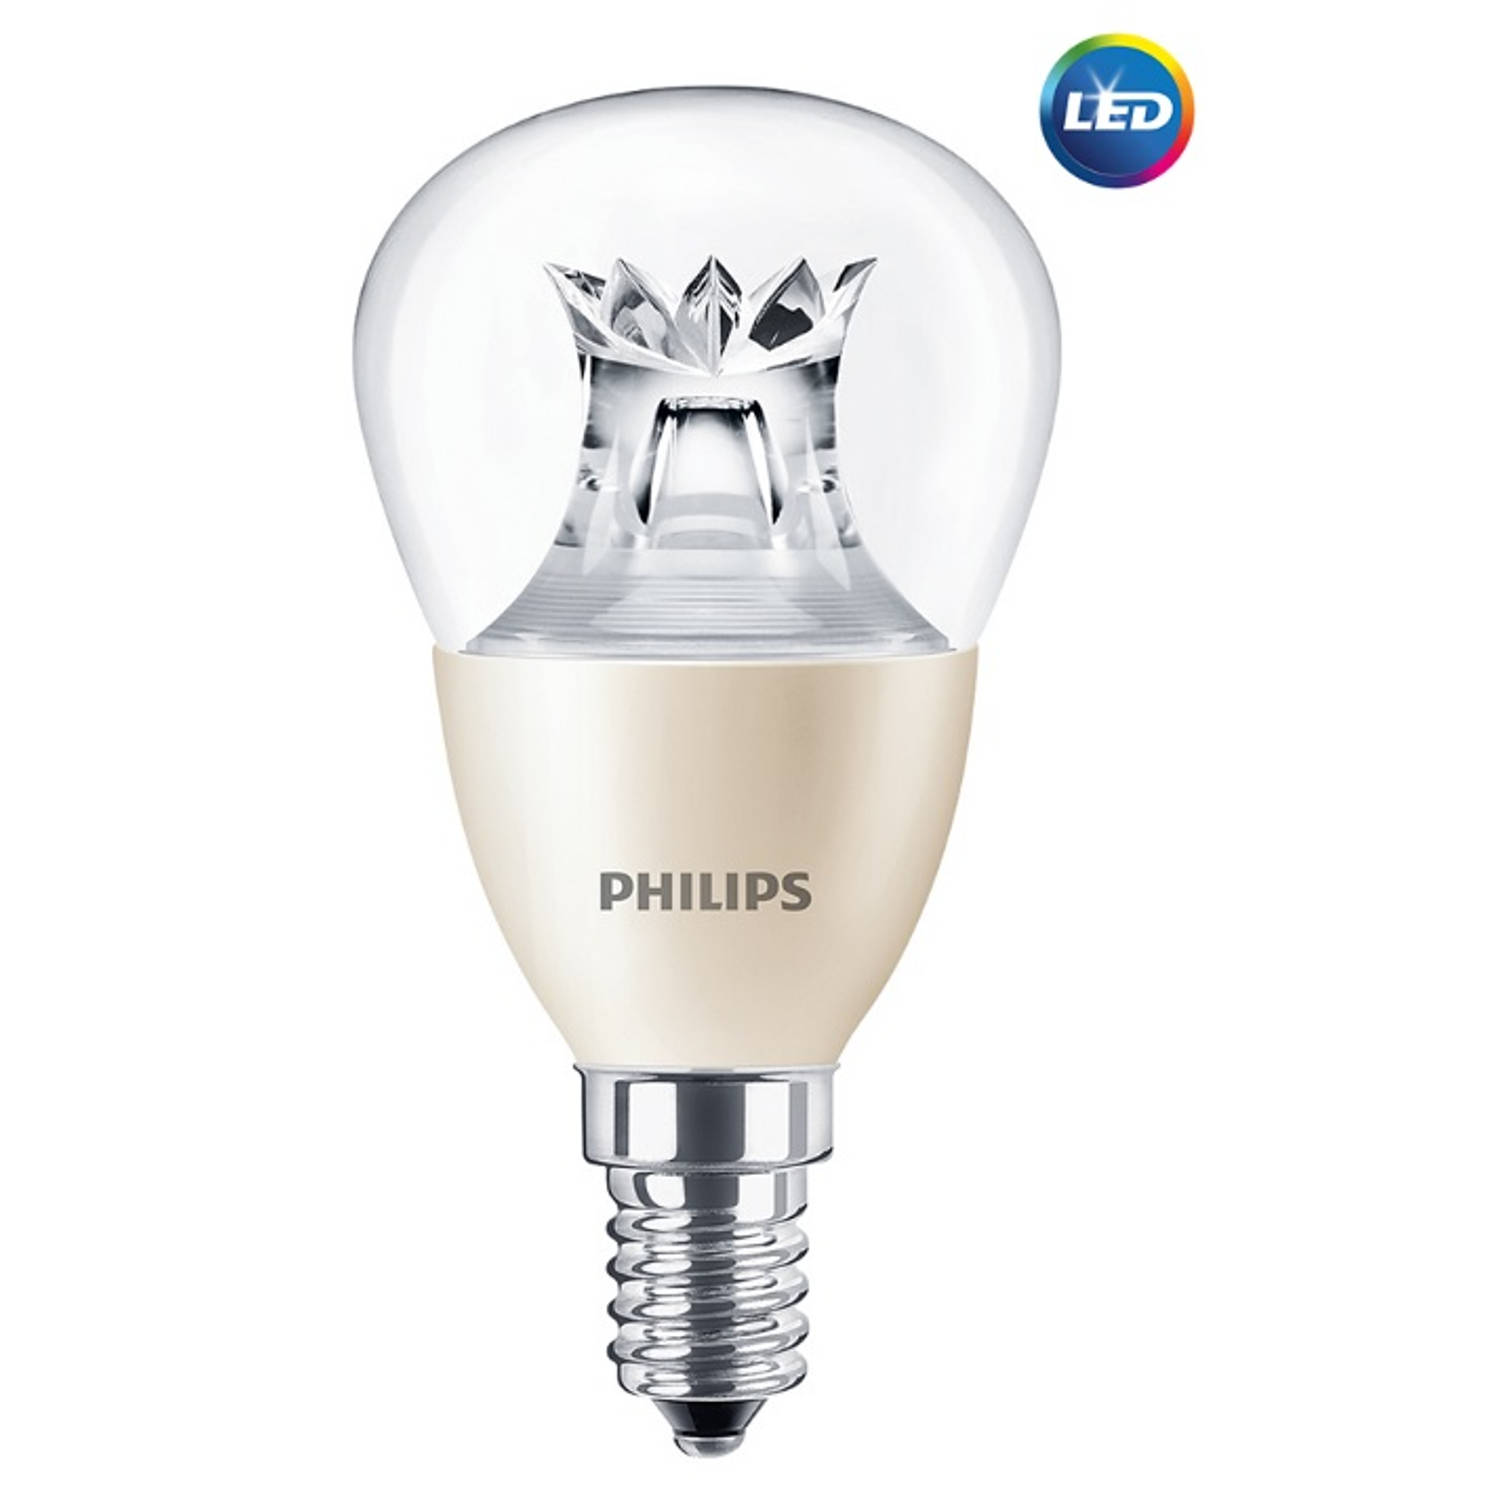 Philips LED Kogellamp E14 6-40W Helder 2200-2700K Dimtone 470lm